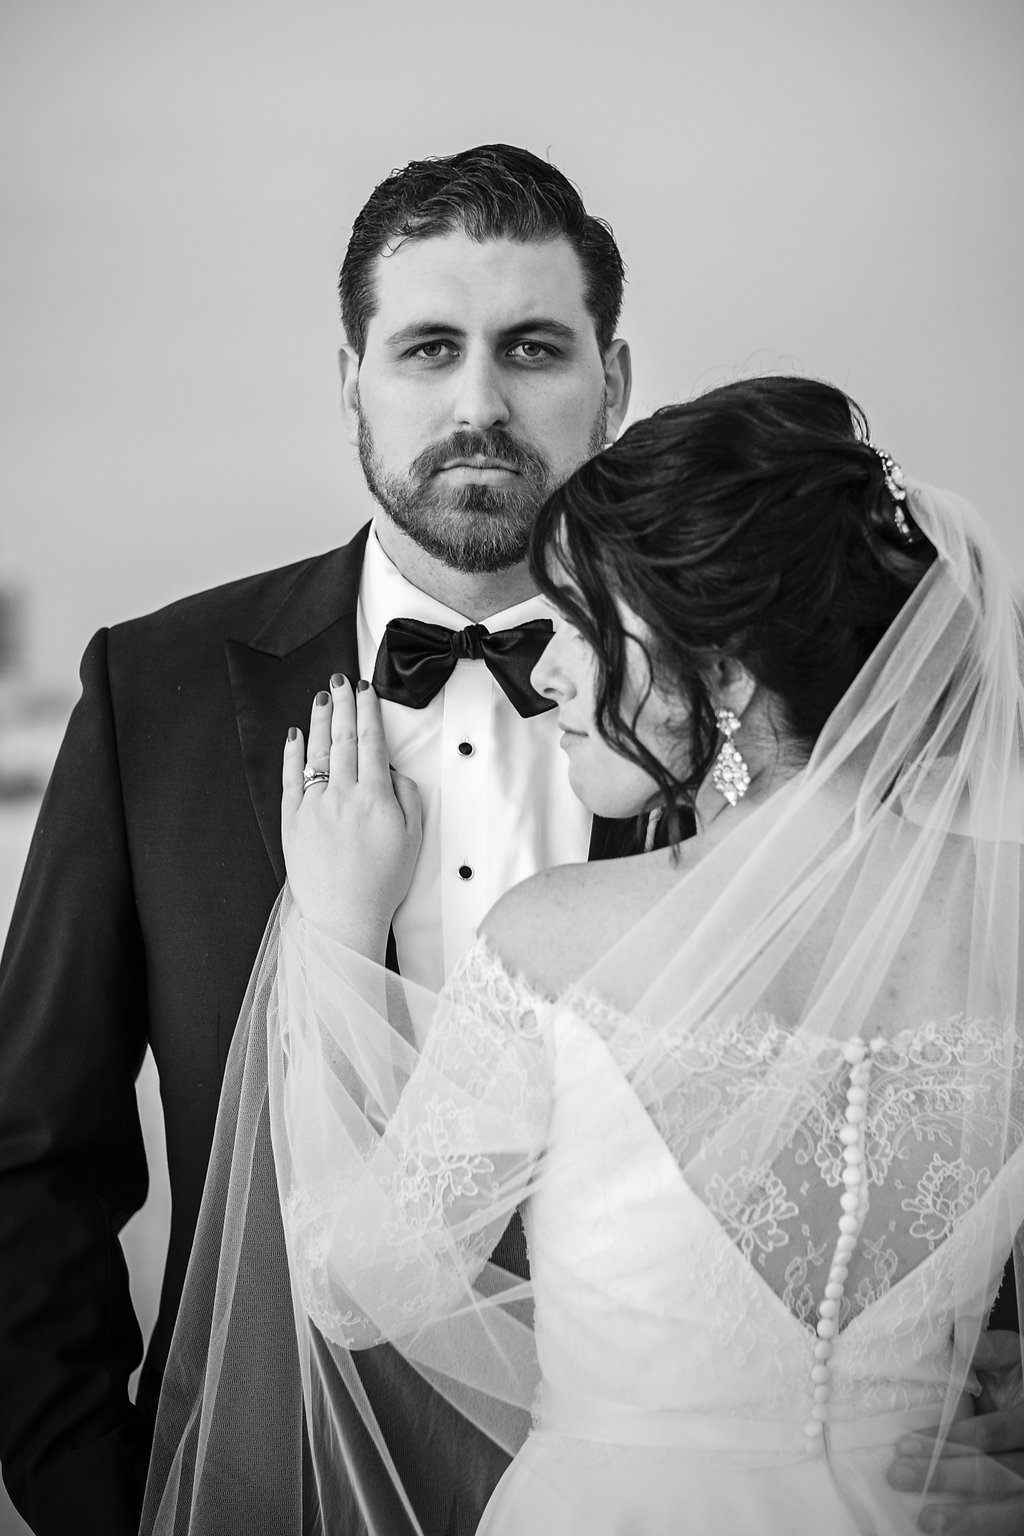 Outdoor Bride and Groom Wedding Portrait, Bride in Lace Sleeve Illusion Back Wedding Dress | St Pete Beach Wedding Venue The Don CeSar | Tampa Bay Photographer Marc Edwards | Bridal Hair and Makeup Femme Akoi Studio